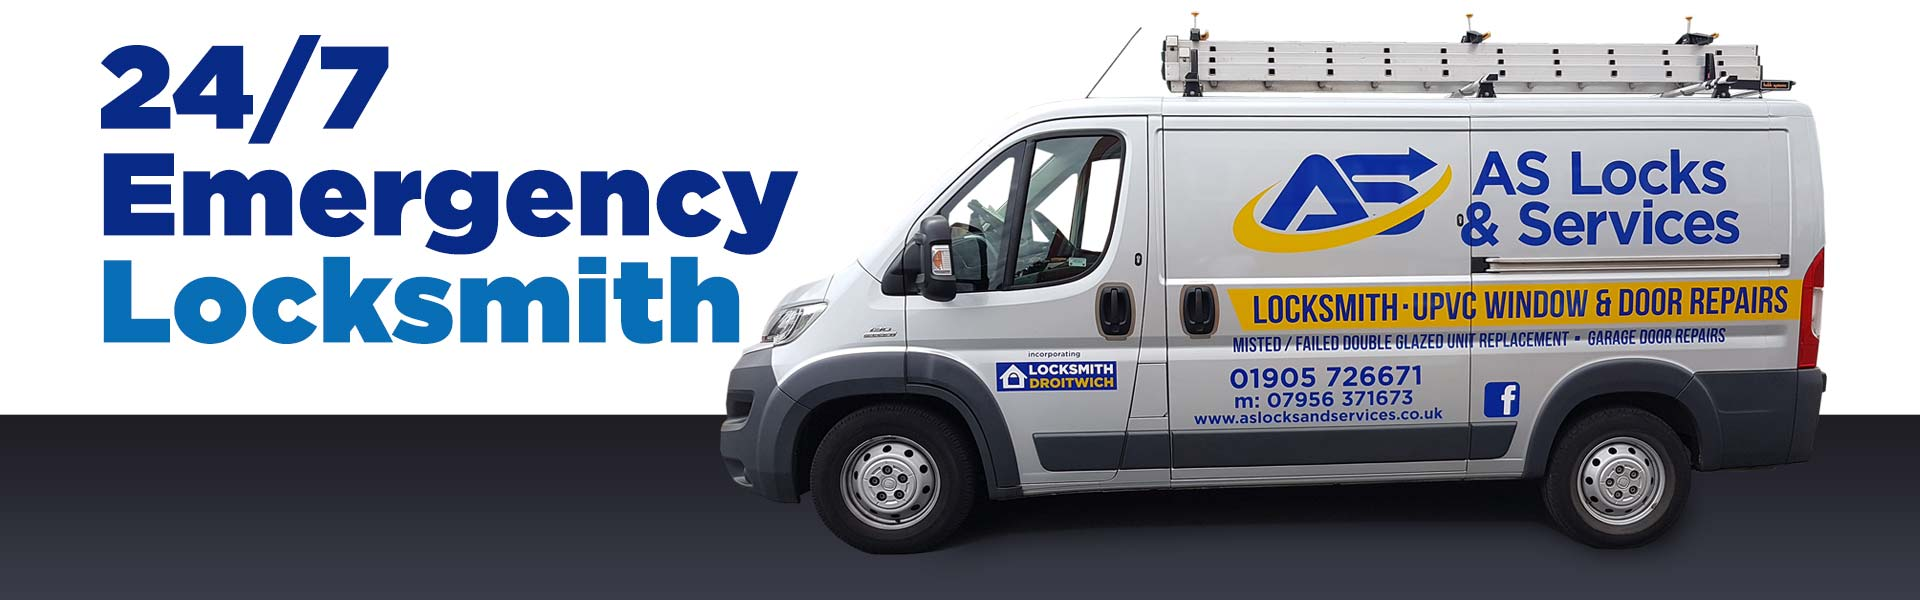 AS Locks and Services Worcester Van